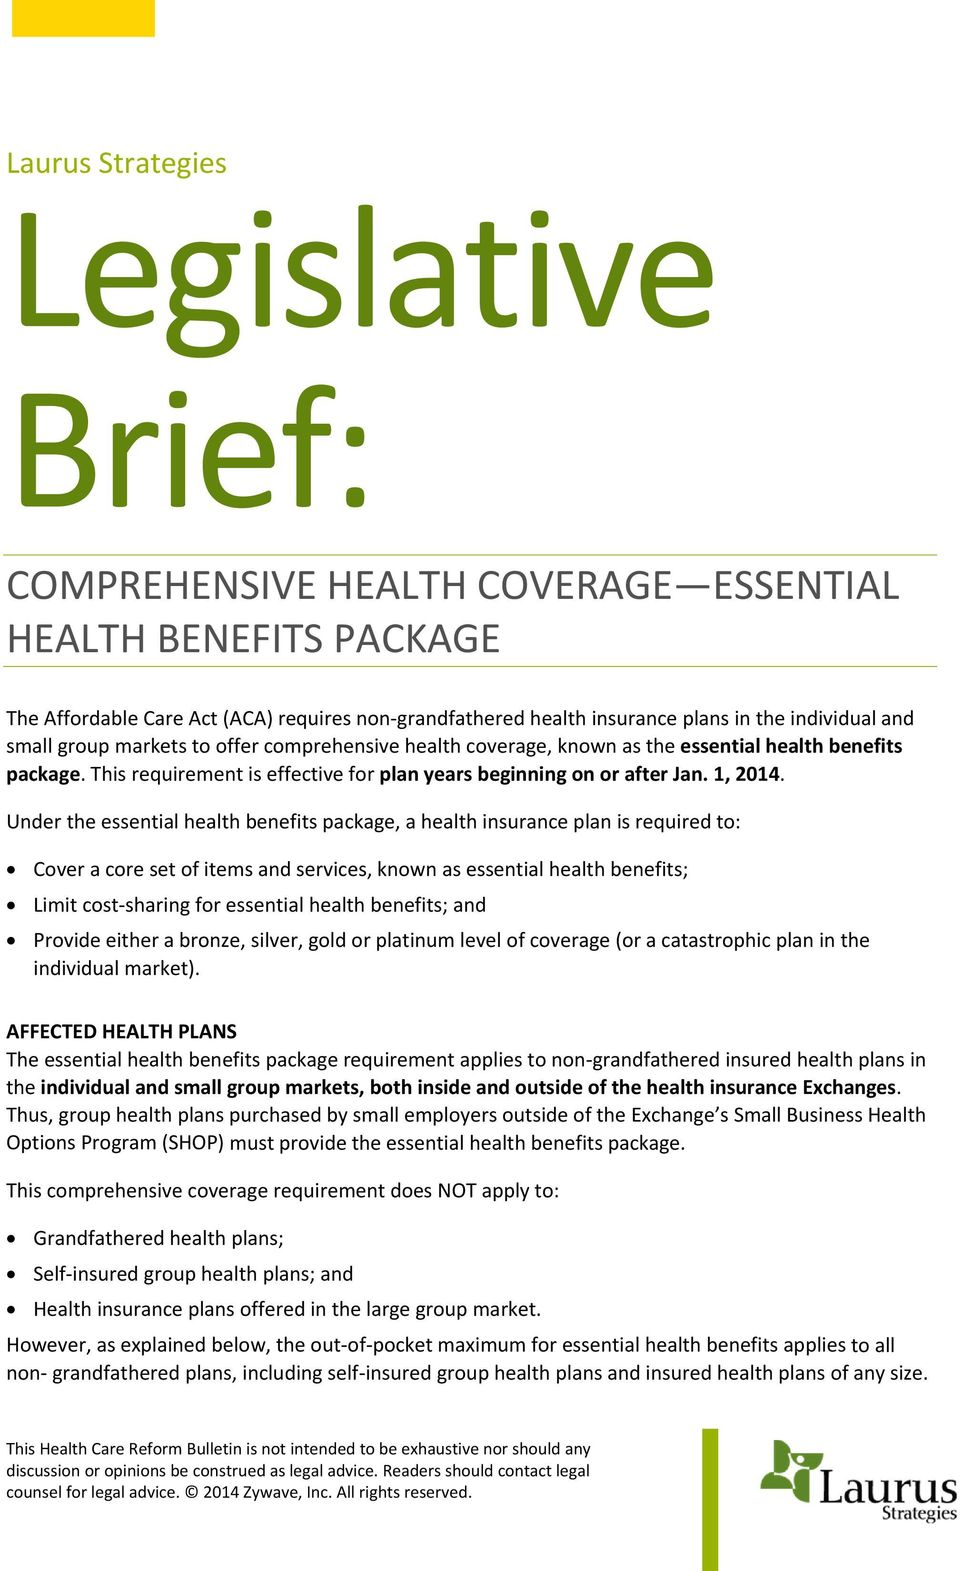 Under the essential health benefits package, a health insurance plan is required to: Cover a core set of items and services, known as essential health benefits; Limit cost sharing for essential